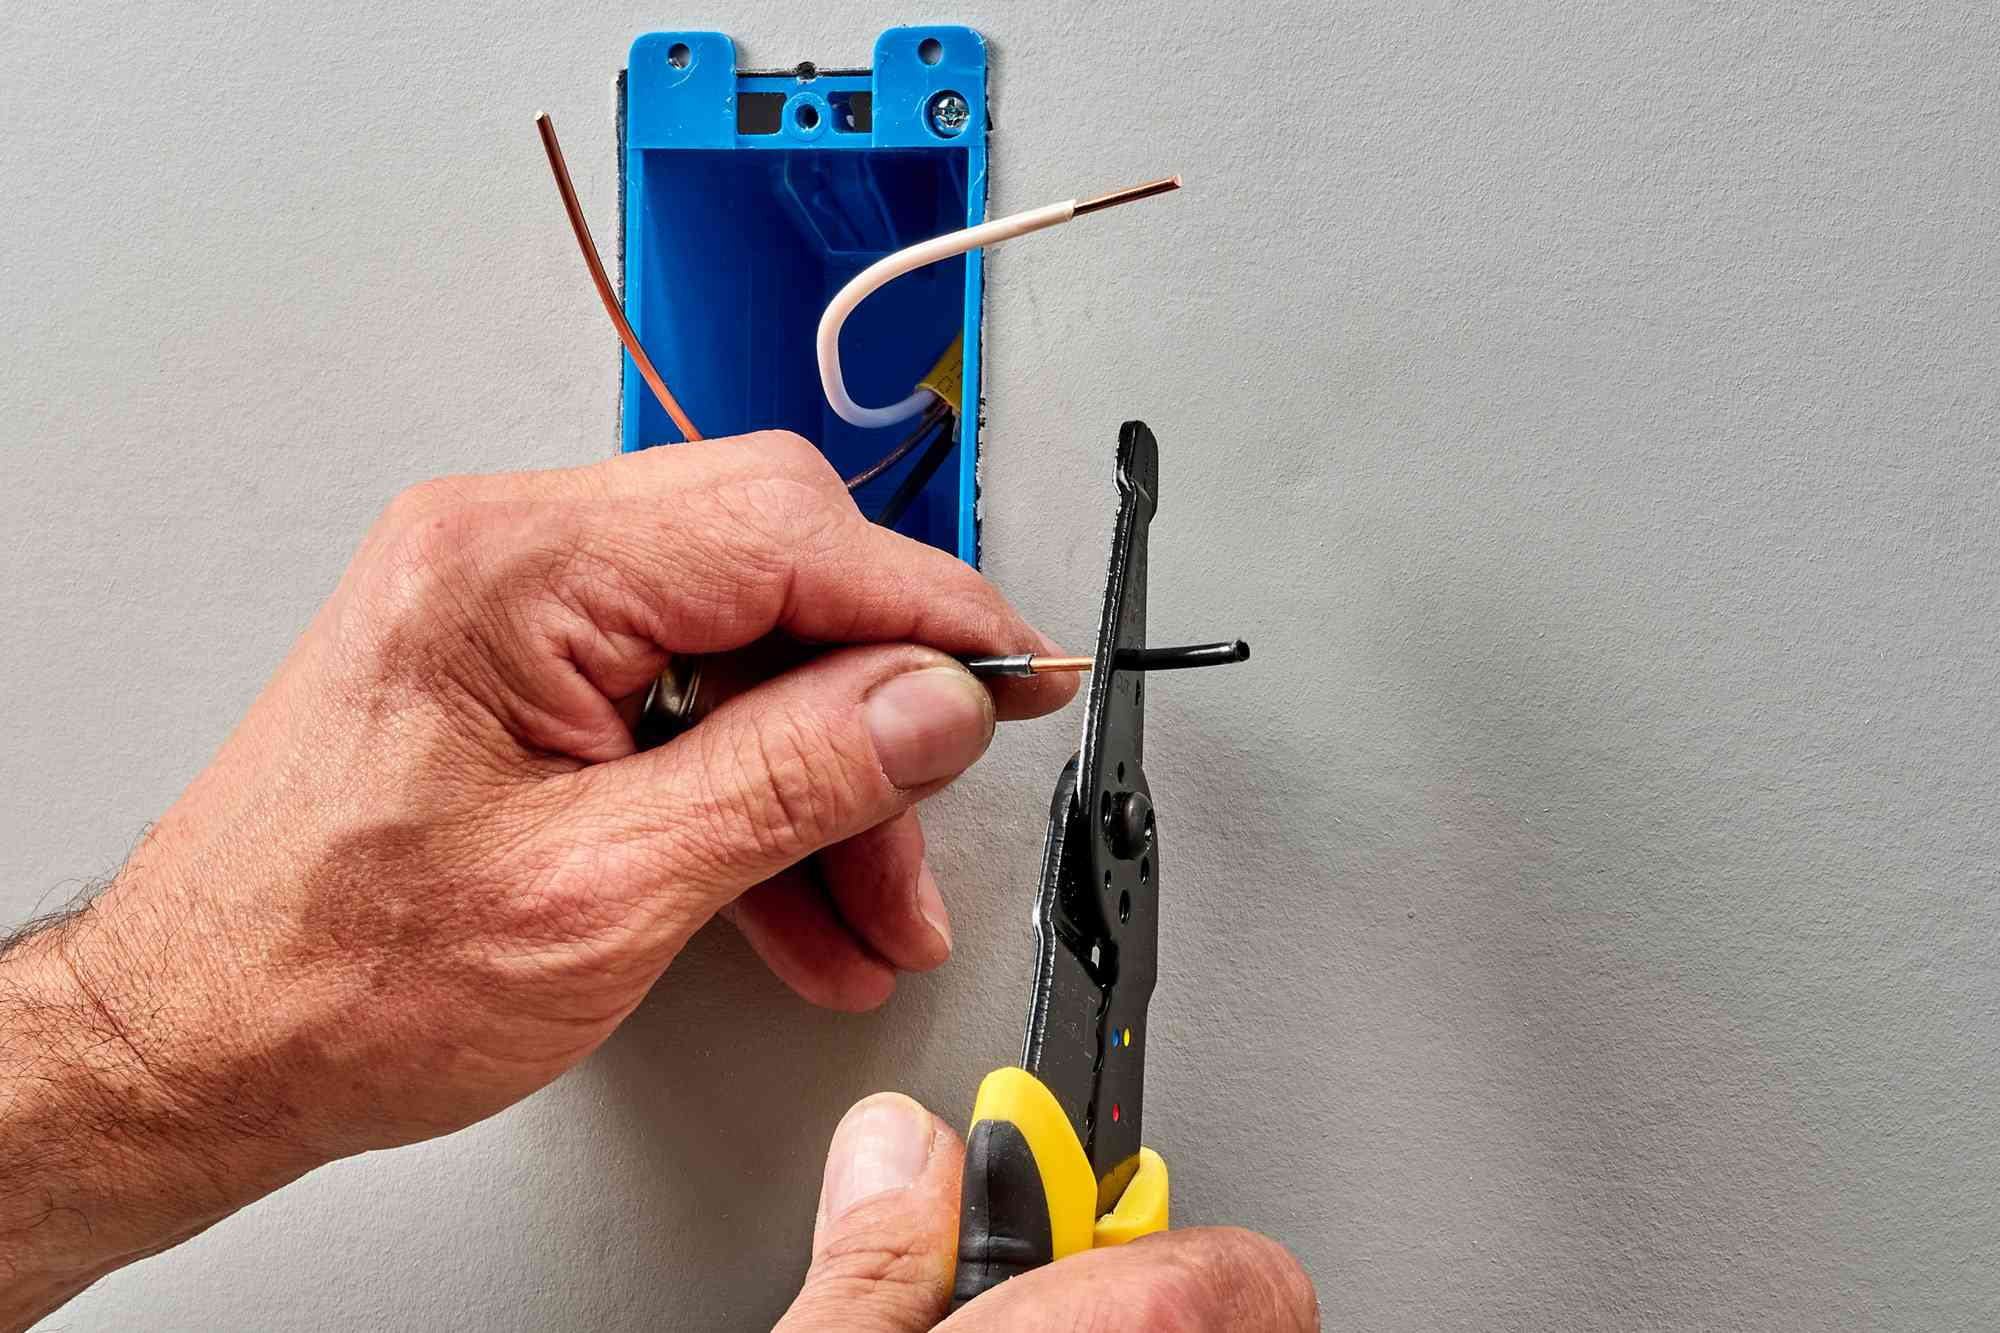 Insulation from circuit wire being stripped with wire stripper